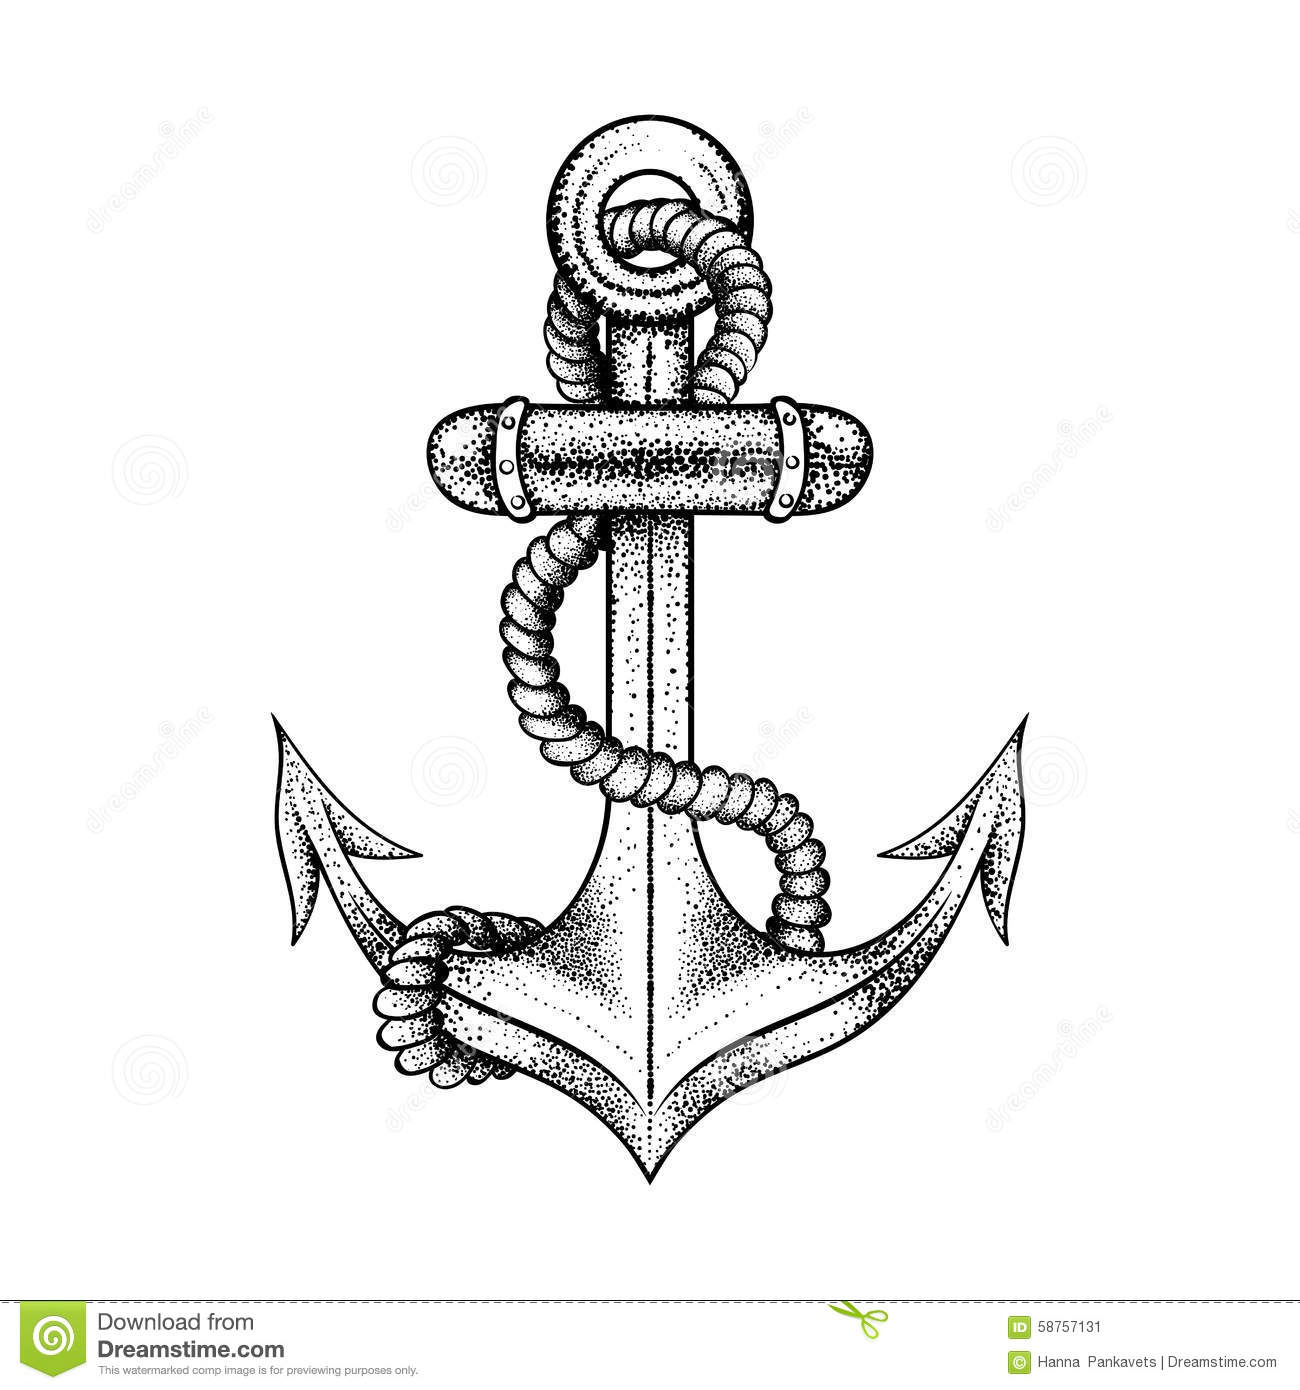 Drawn rope anchor rope Ship for with  black